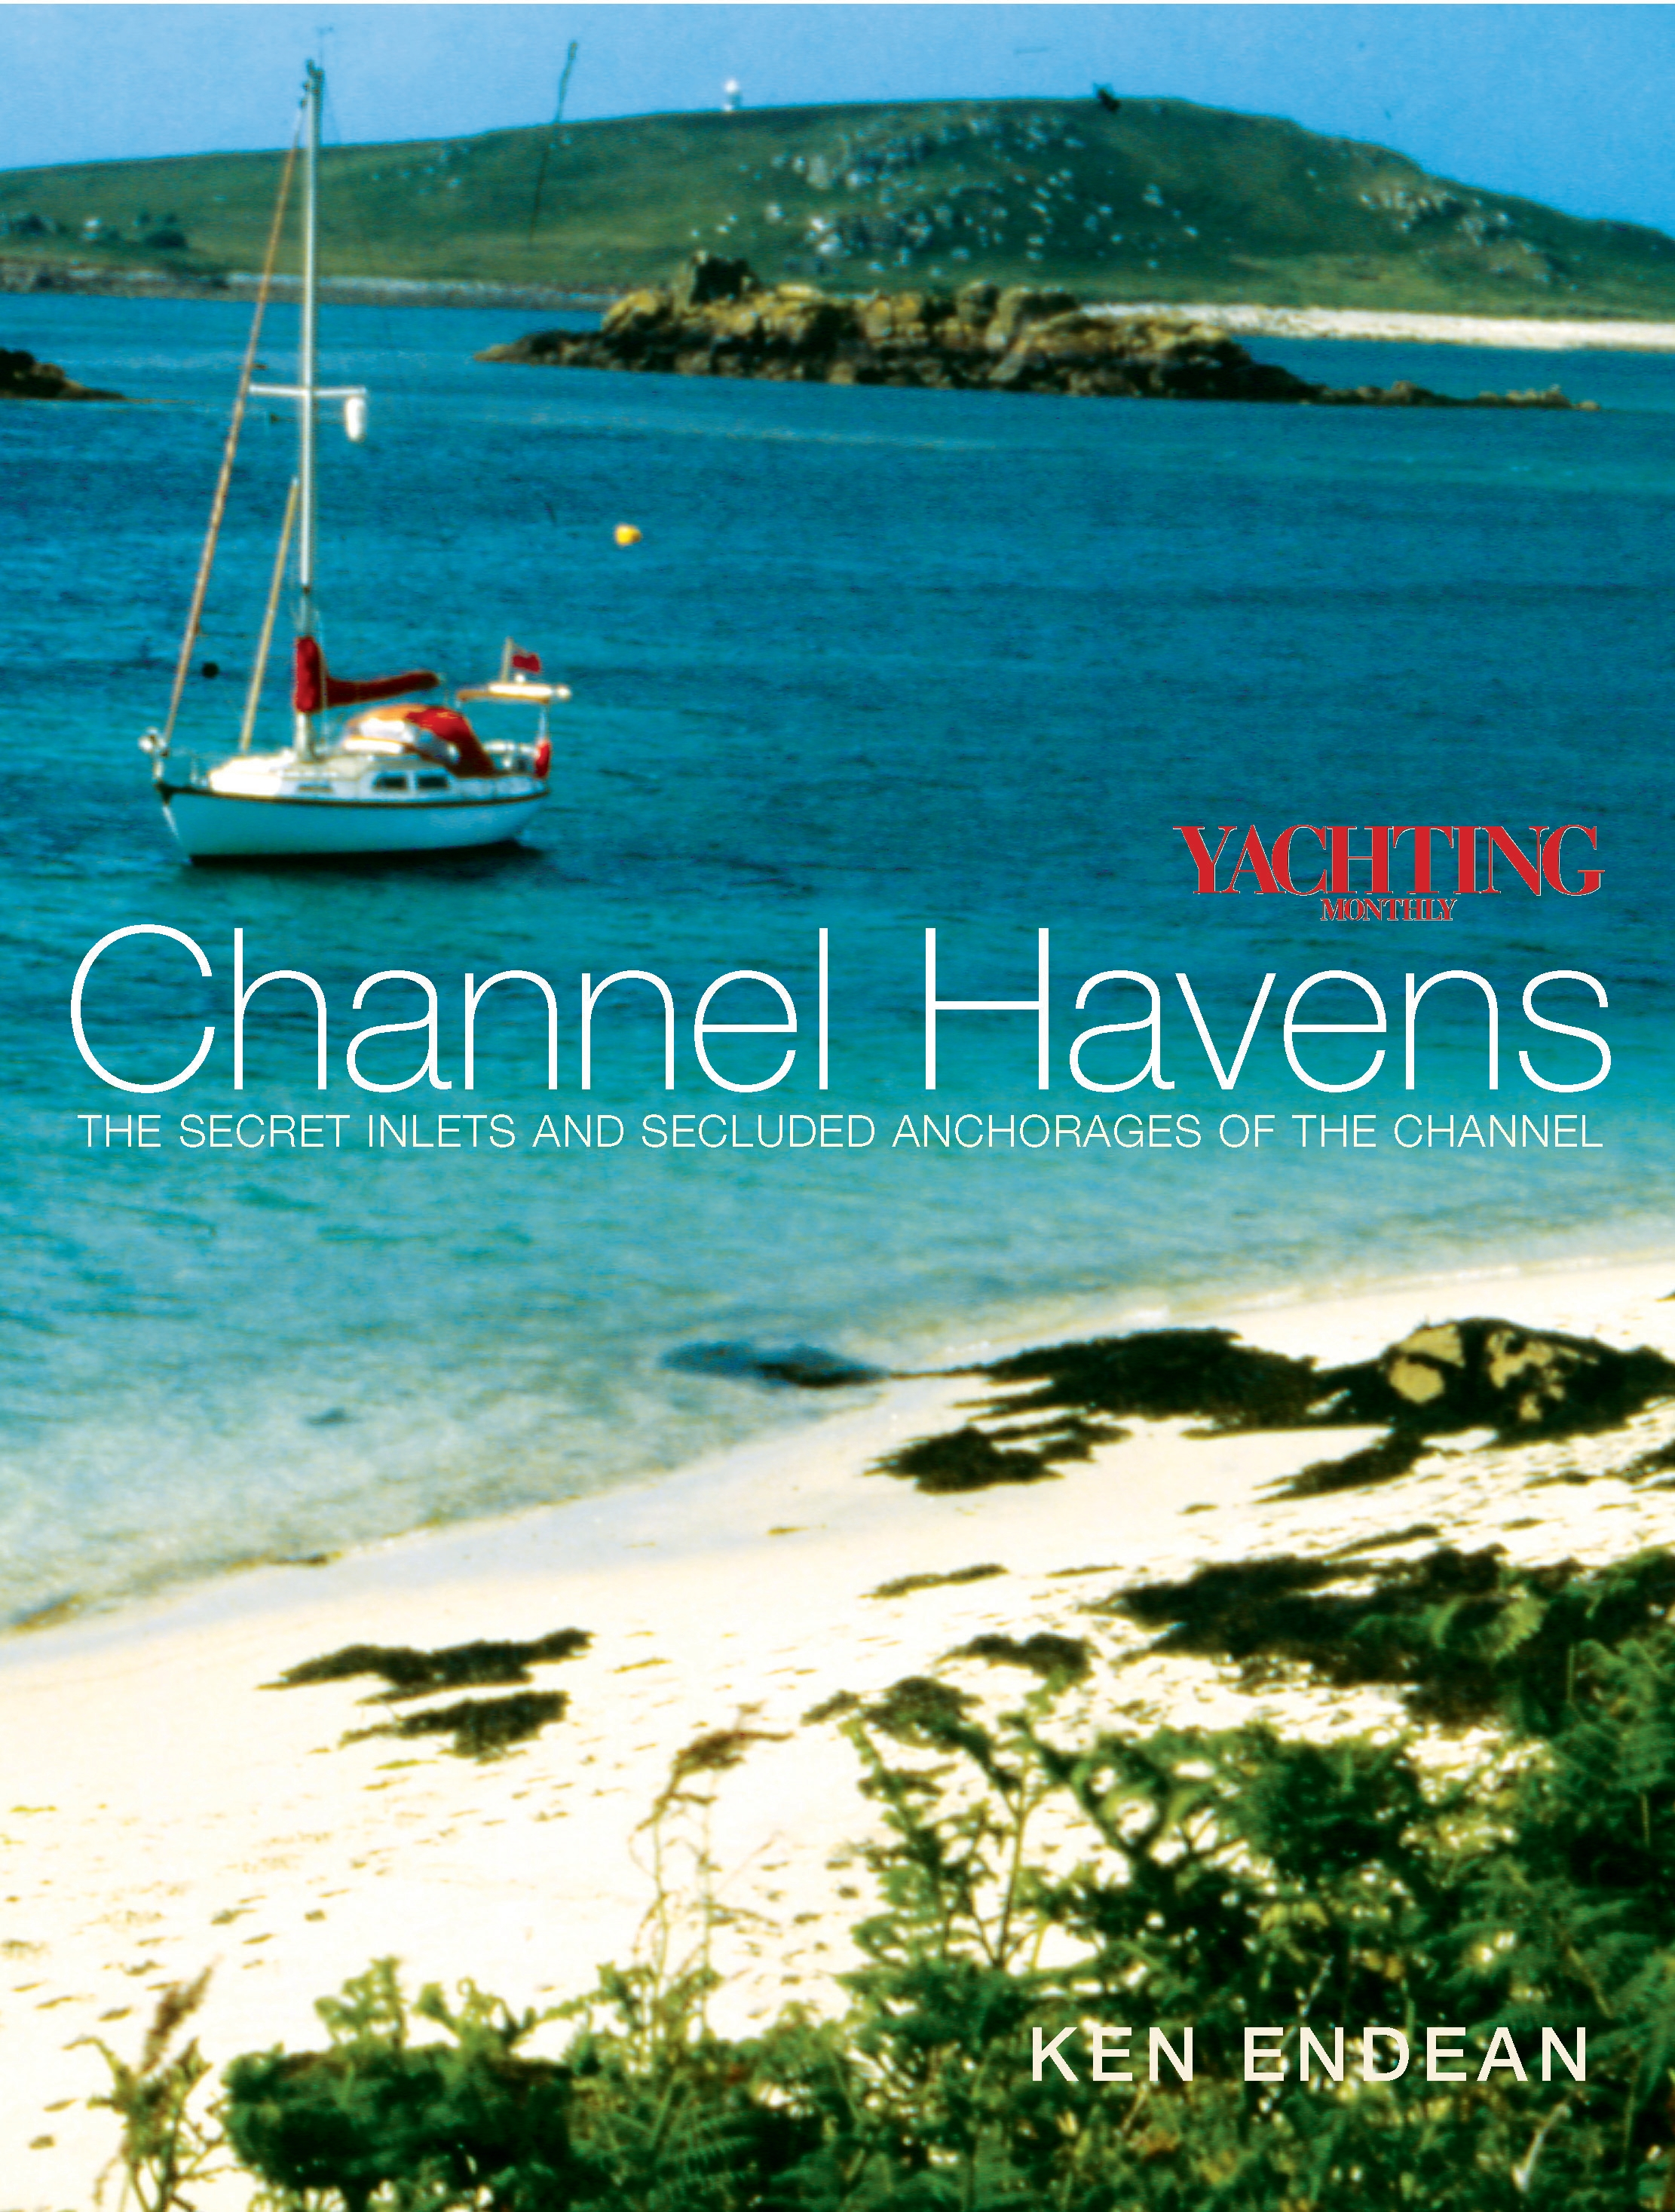 Yachting Monthly's Channel Havens The Secret Inlets and Secluded Anchorages of the Channel